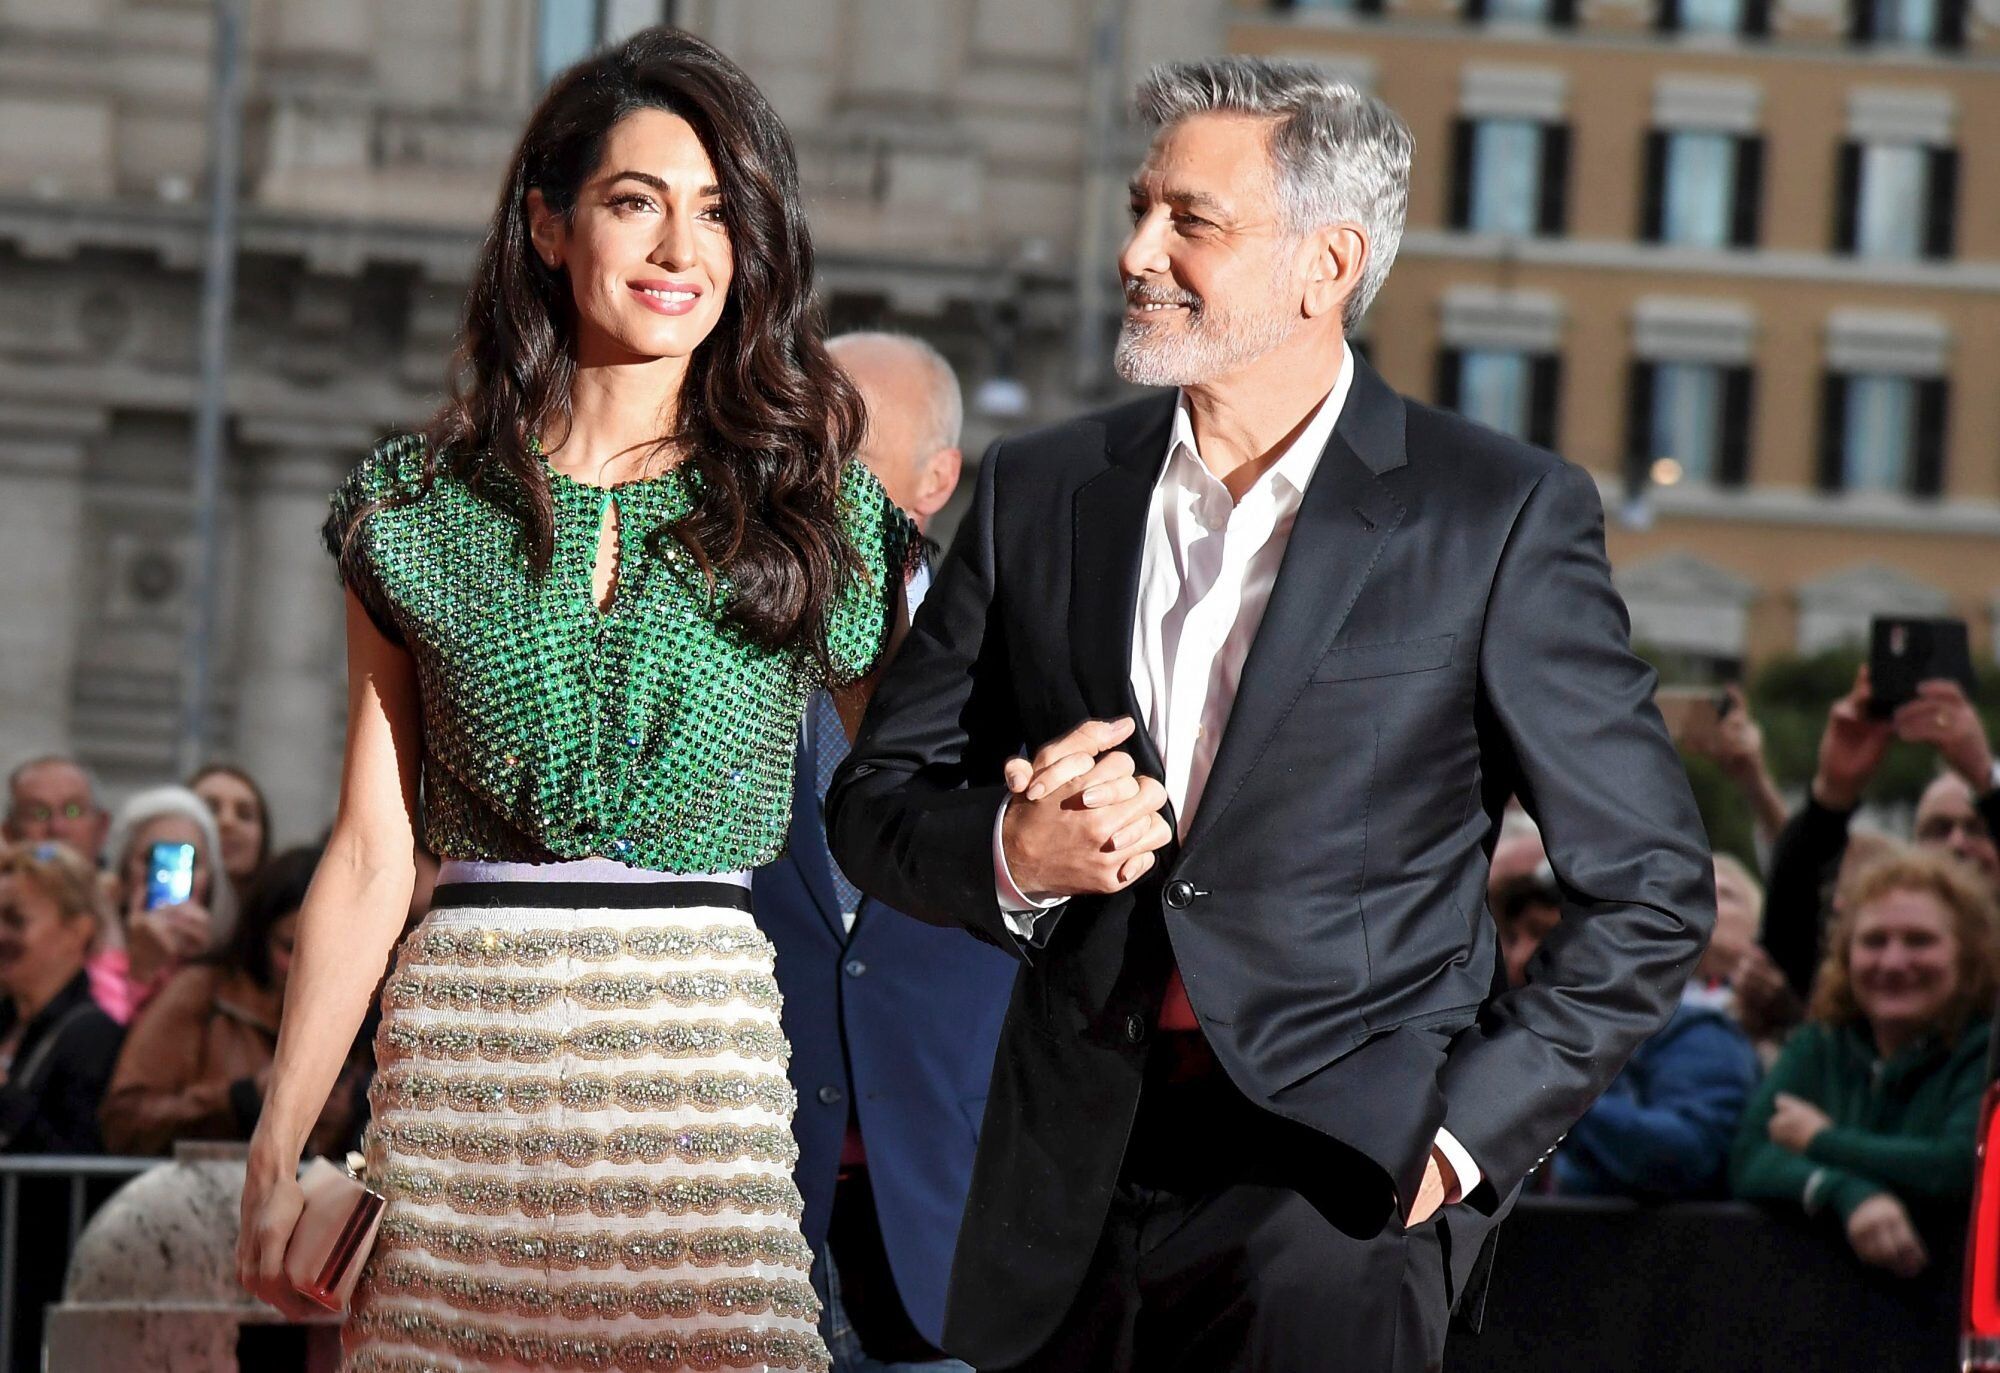 George and Amal thrilled to be back on Lake Como Image?url=https%3A%2F%2Fstatic.onecms.io%2Fwp-content%2Fuploads%2Fsites%2F20%2F2021%2F06%2F08%2Fgeorge-amal-clooney-2000